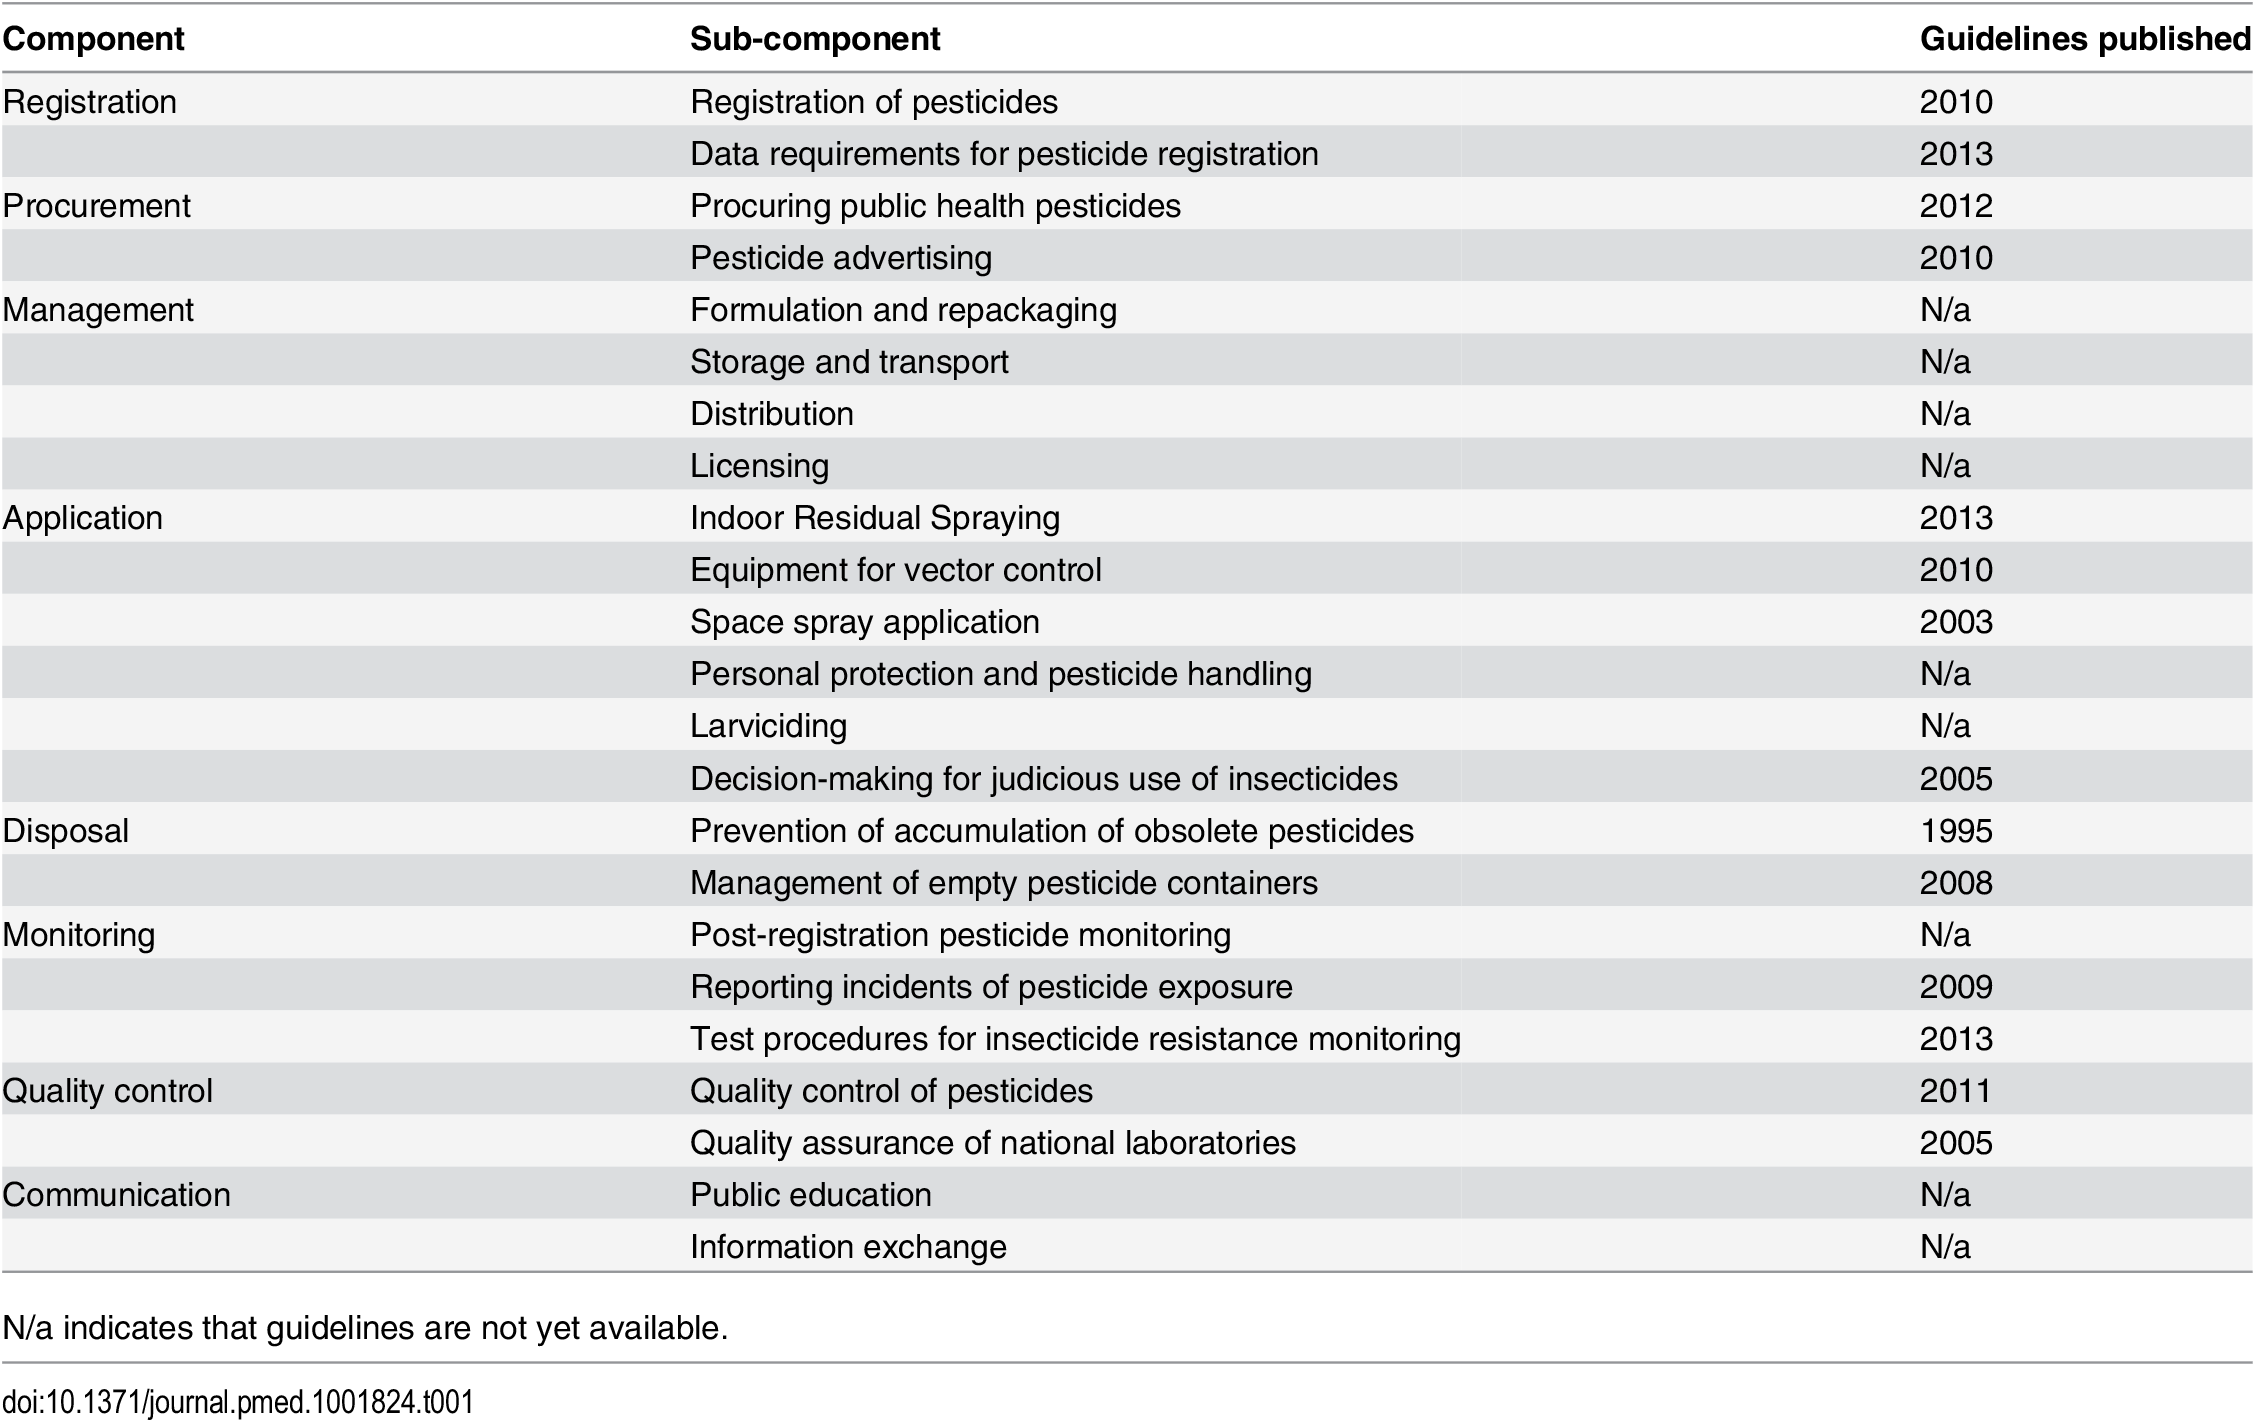 WHO and/or FAO global authoritative guidelines in relation to the individual components of public health pesticide management [<em class=&quot;ref&quot;>23</em>].